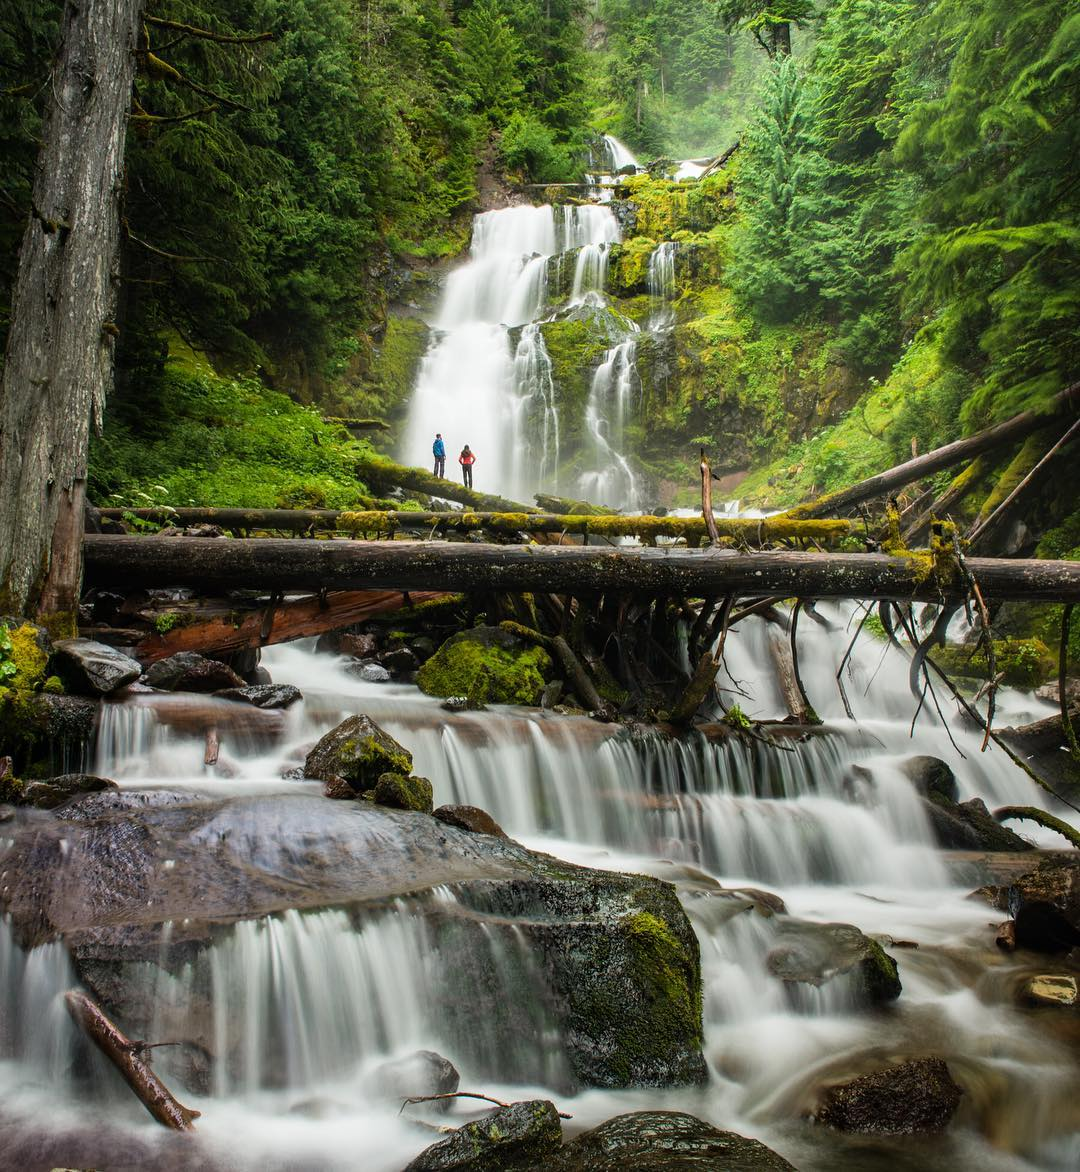 I think there's a waterfall-lover in all of us